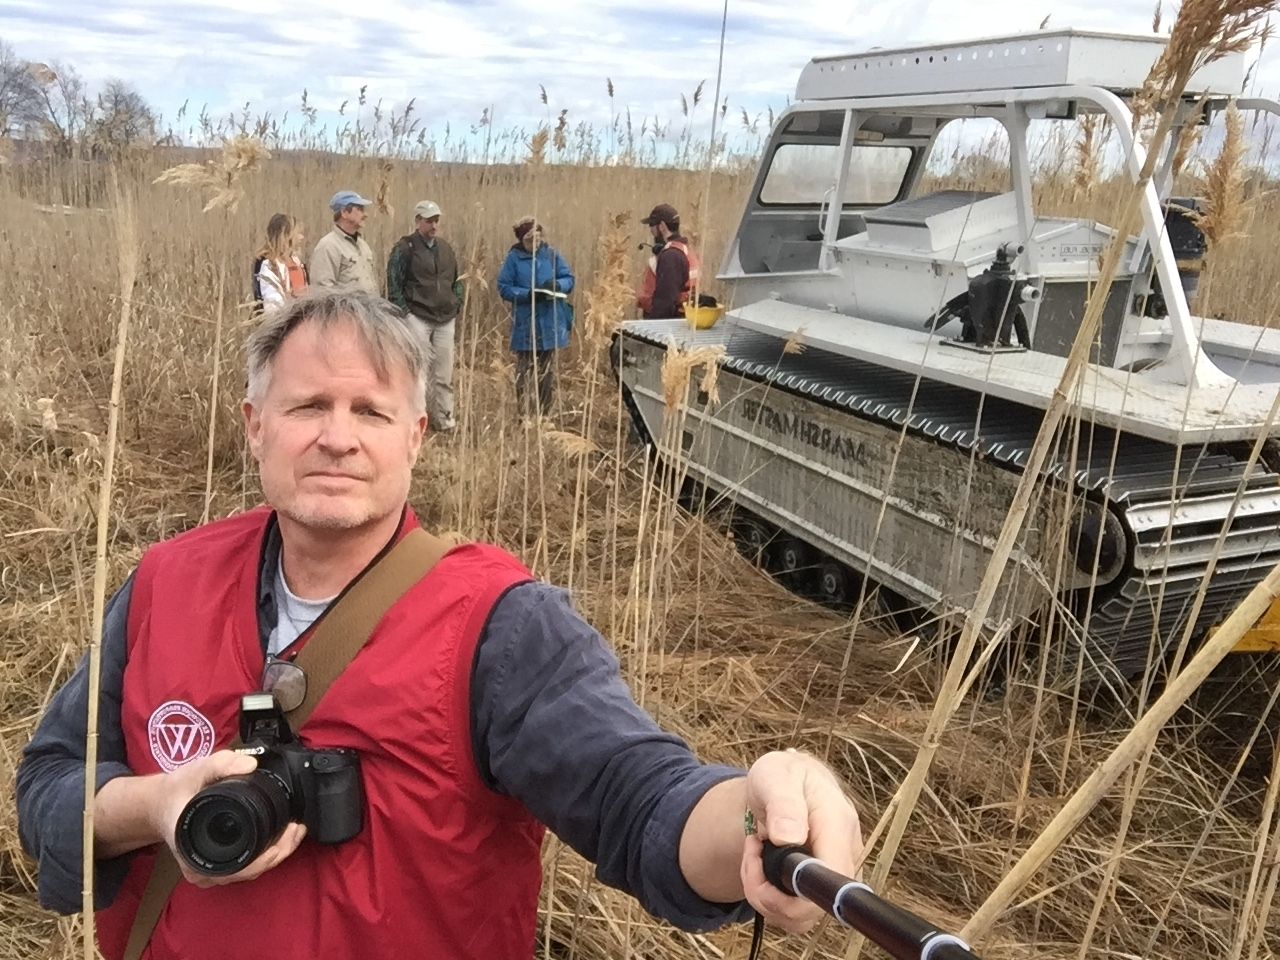 Selfie, JHTD with Marsh Master in the Background 2017